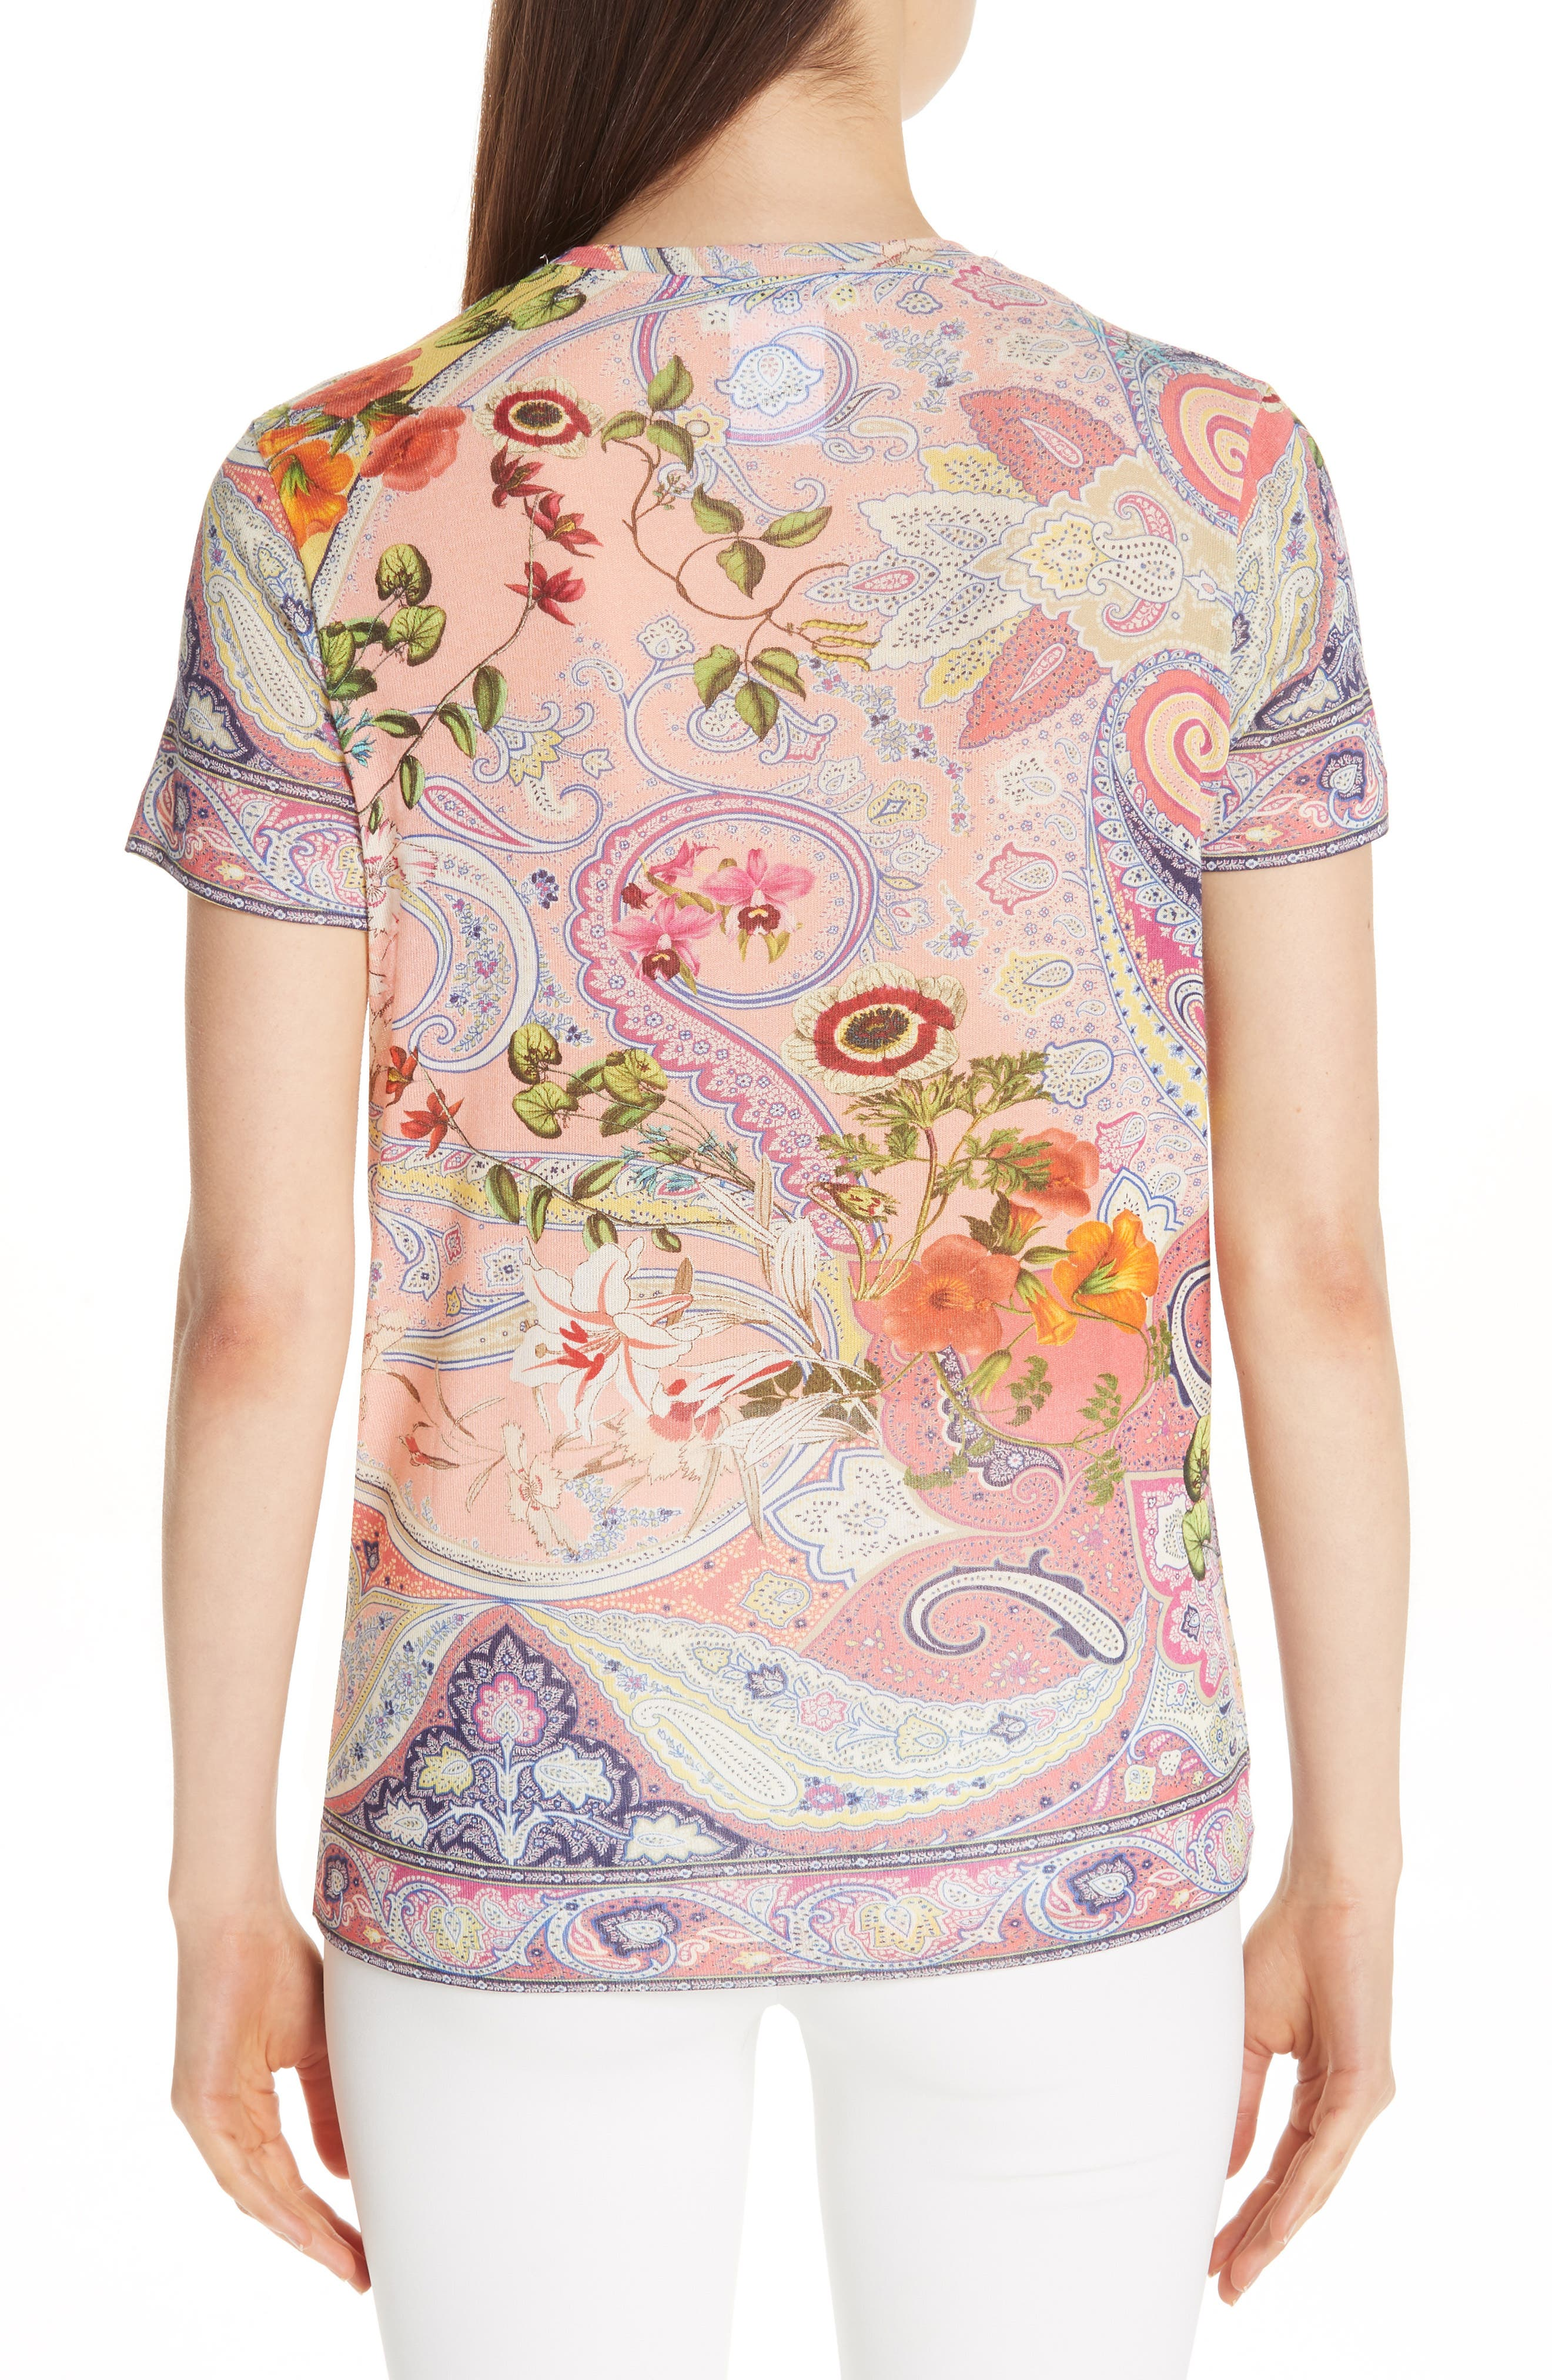 ETRO,                             Paisley Print Stretch Jersey Tee,                             Alternate thumbnail 2, color,                             RED